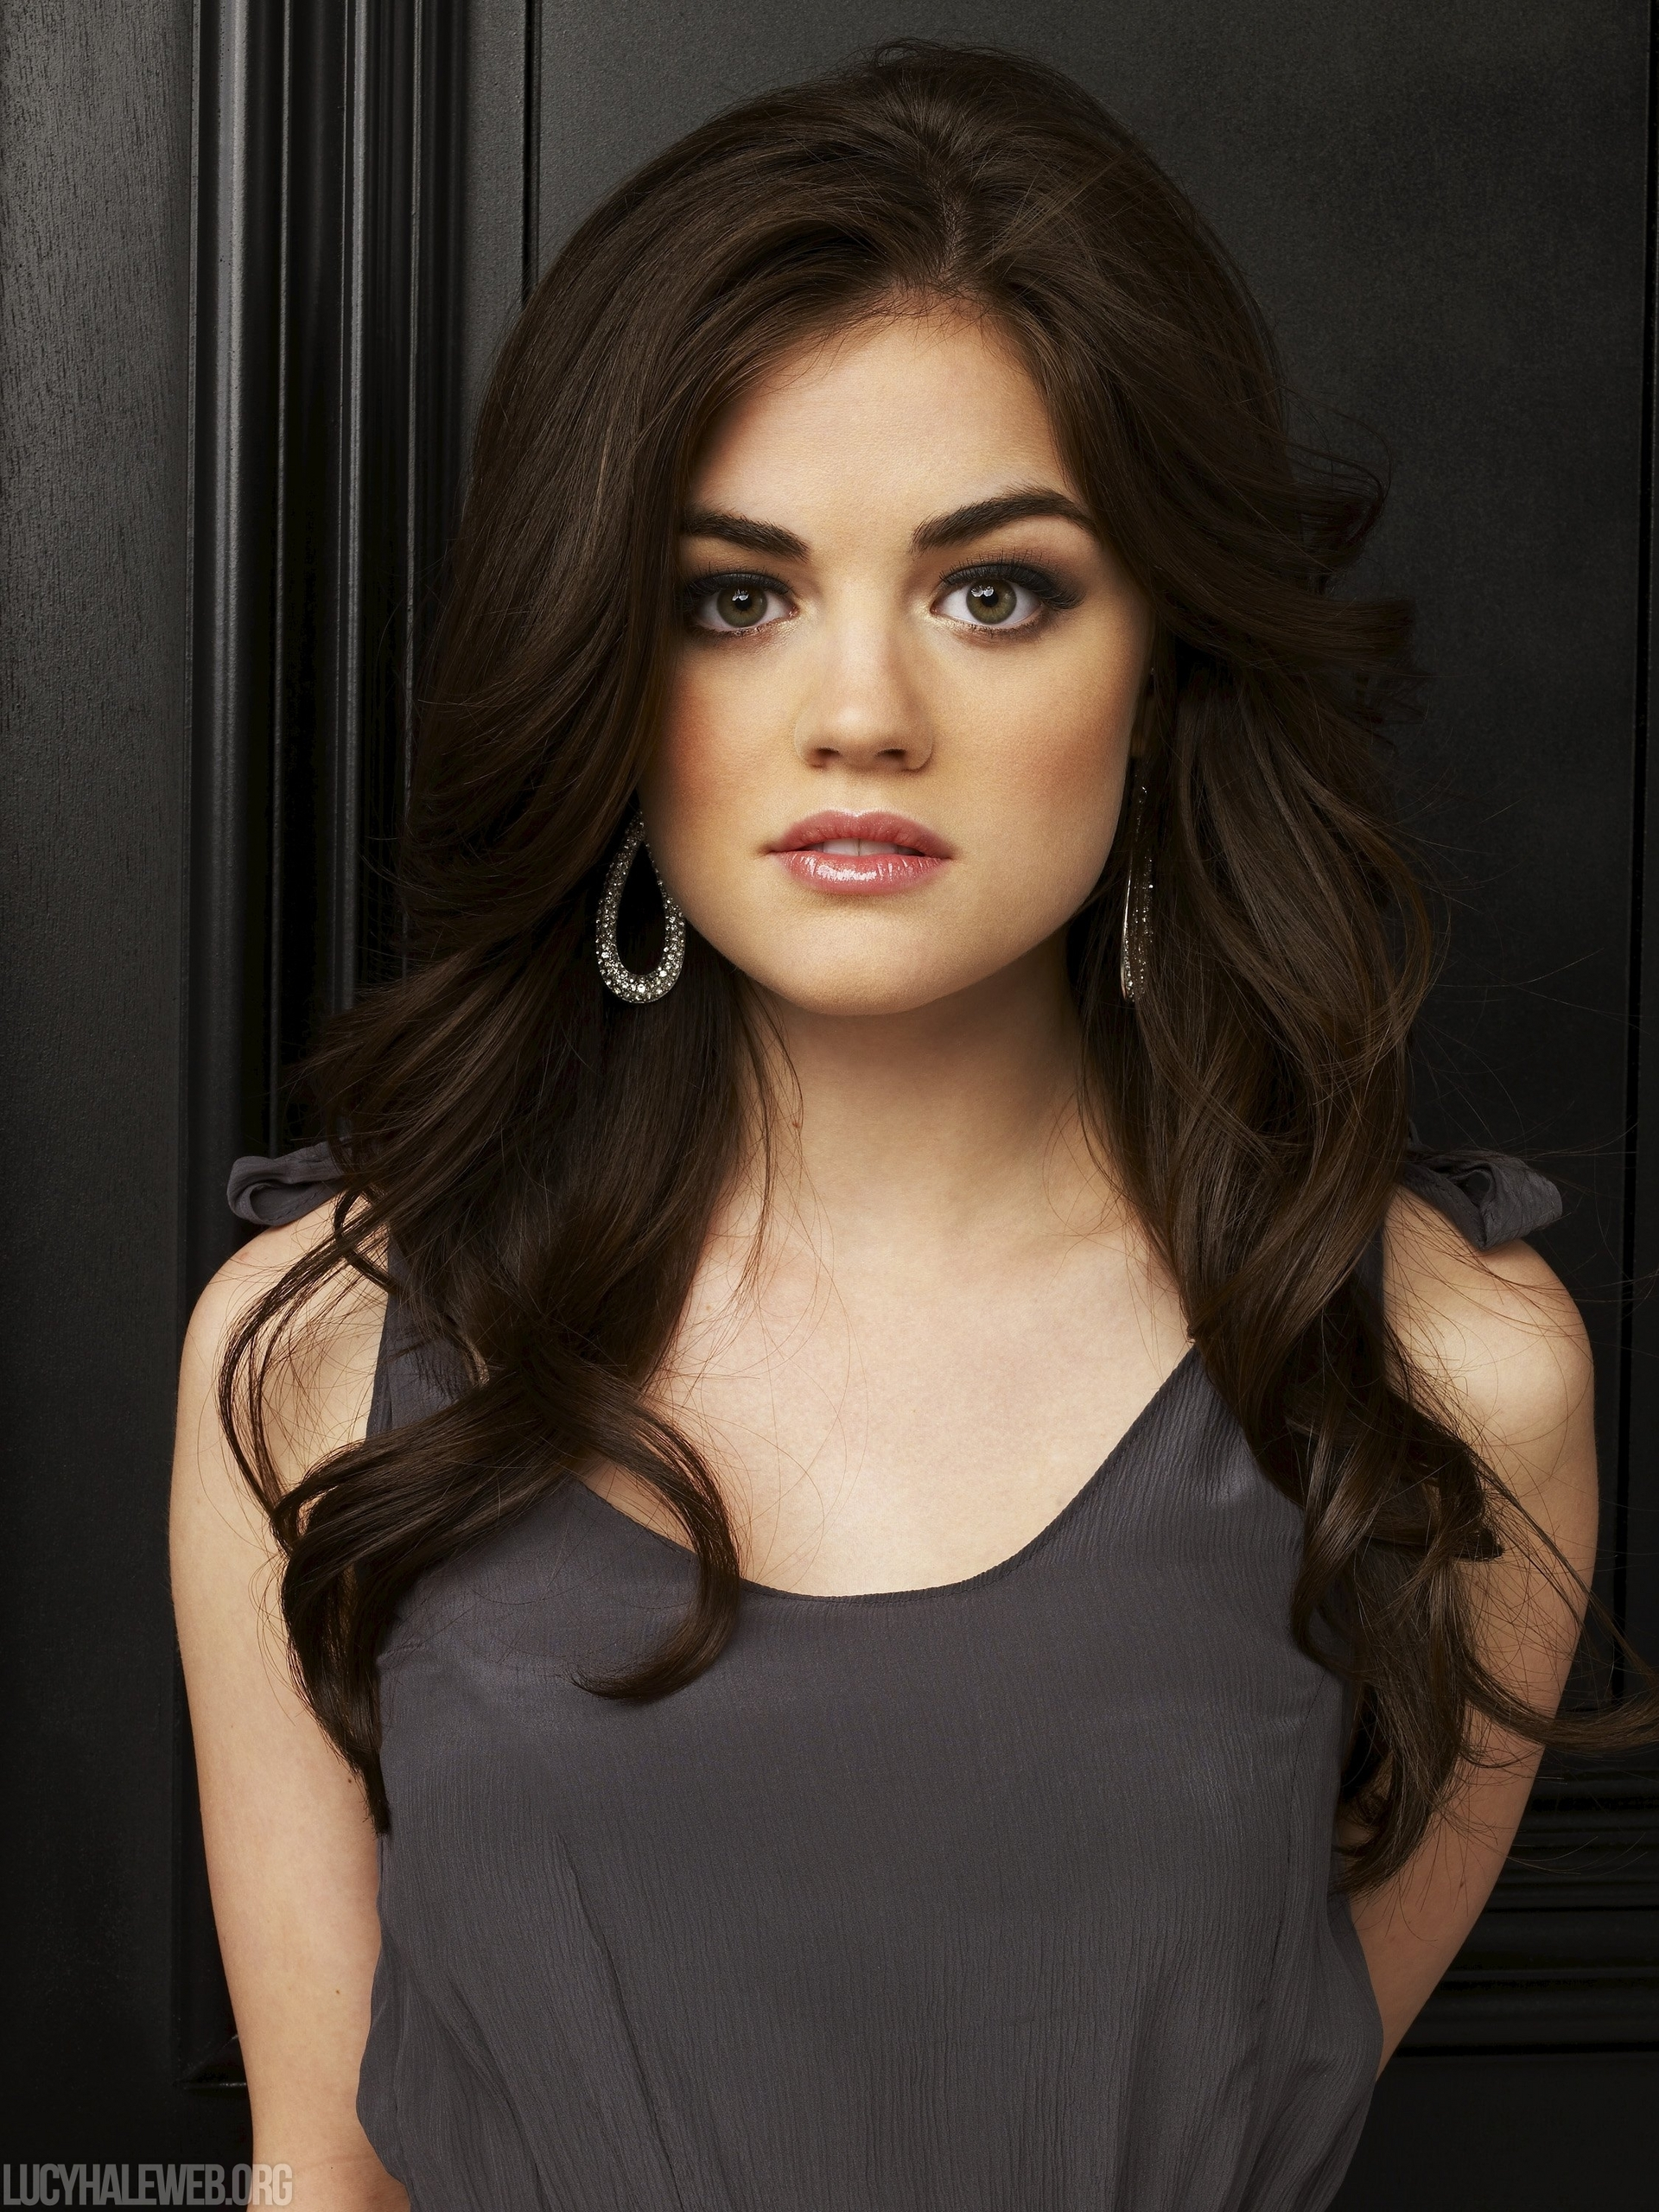 Lucy Hale Pretty Little Liars